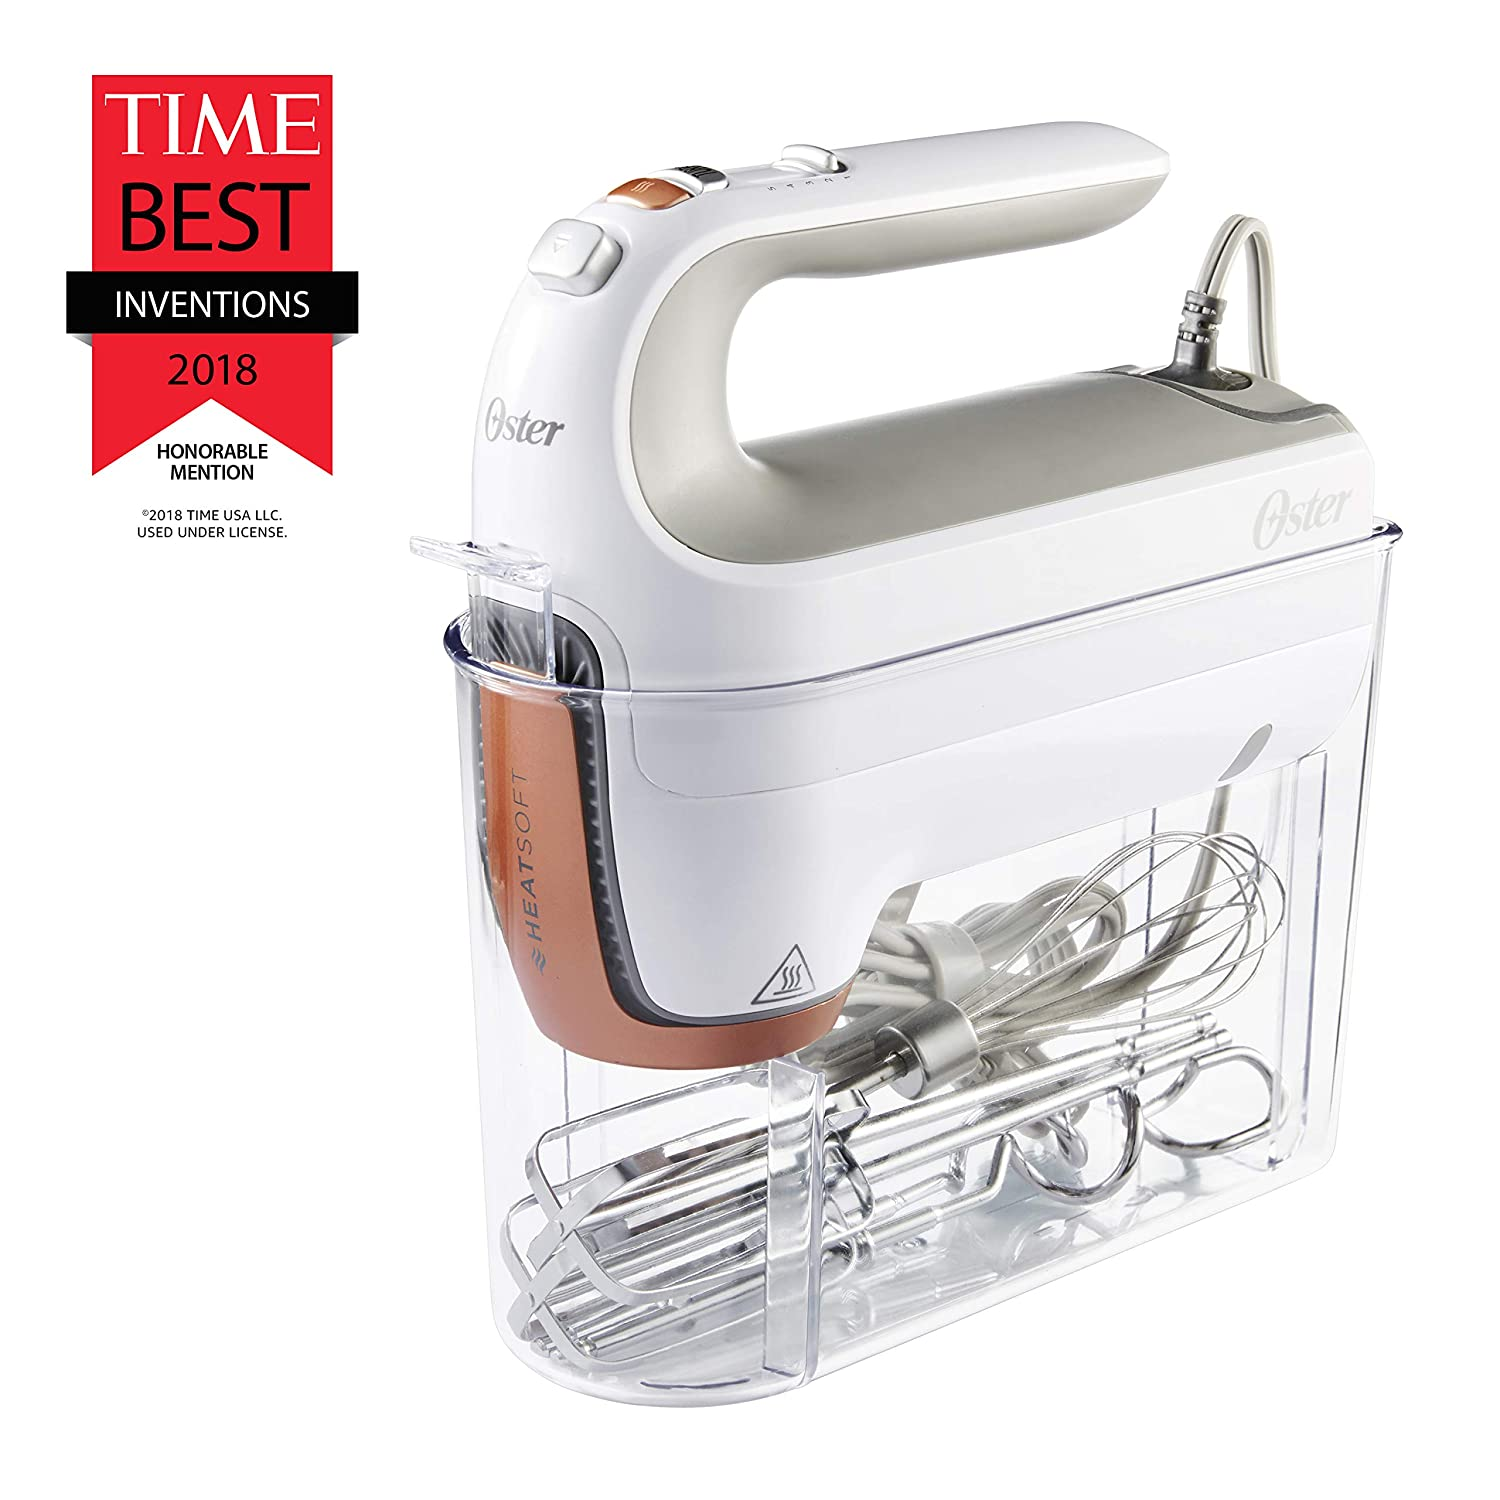 and Storage Case Dough Hooks Oster 270-Watt Hand Mixer with HEATSOFT Technology and Whisk